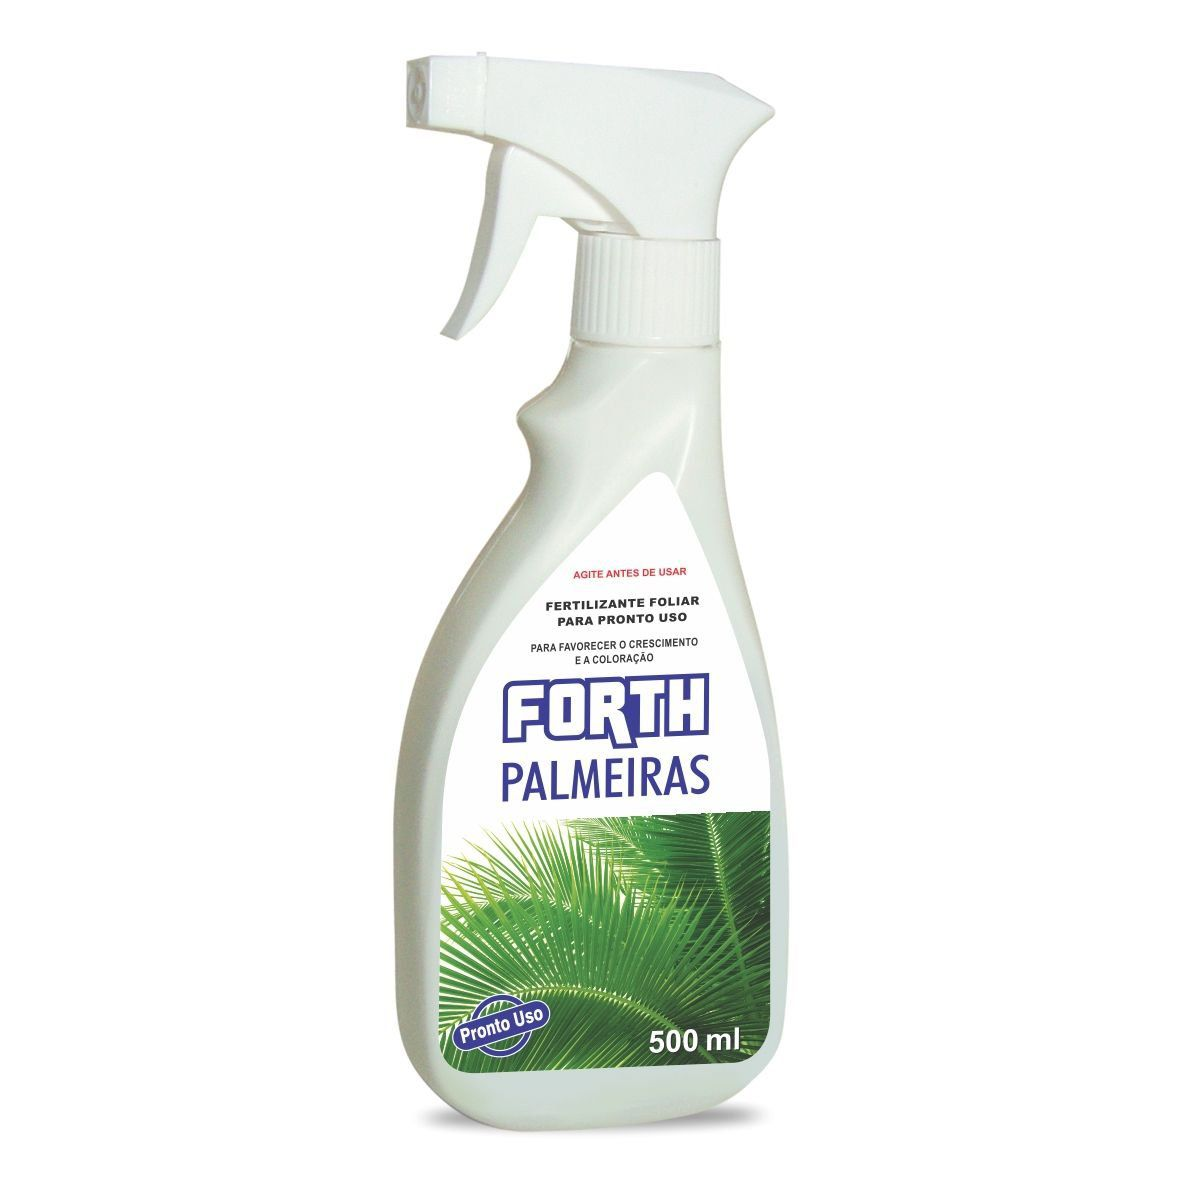 Fertilizante Foliar Forth Palmeiras 500ml pronto uso